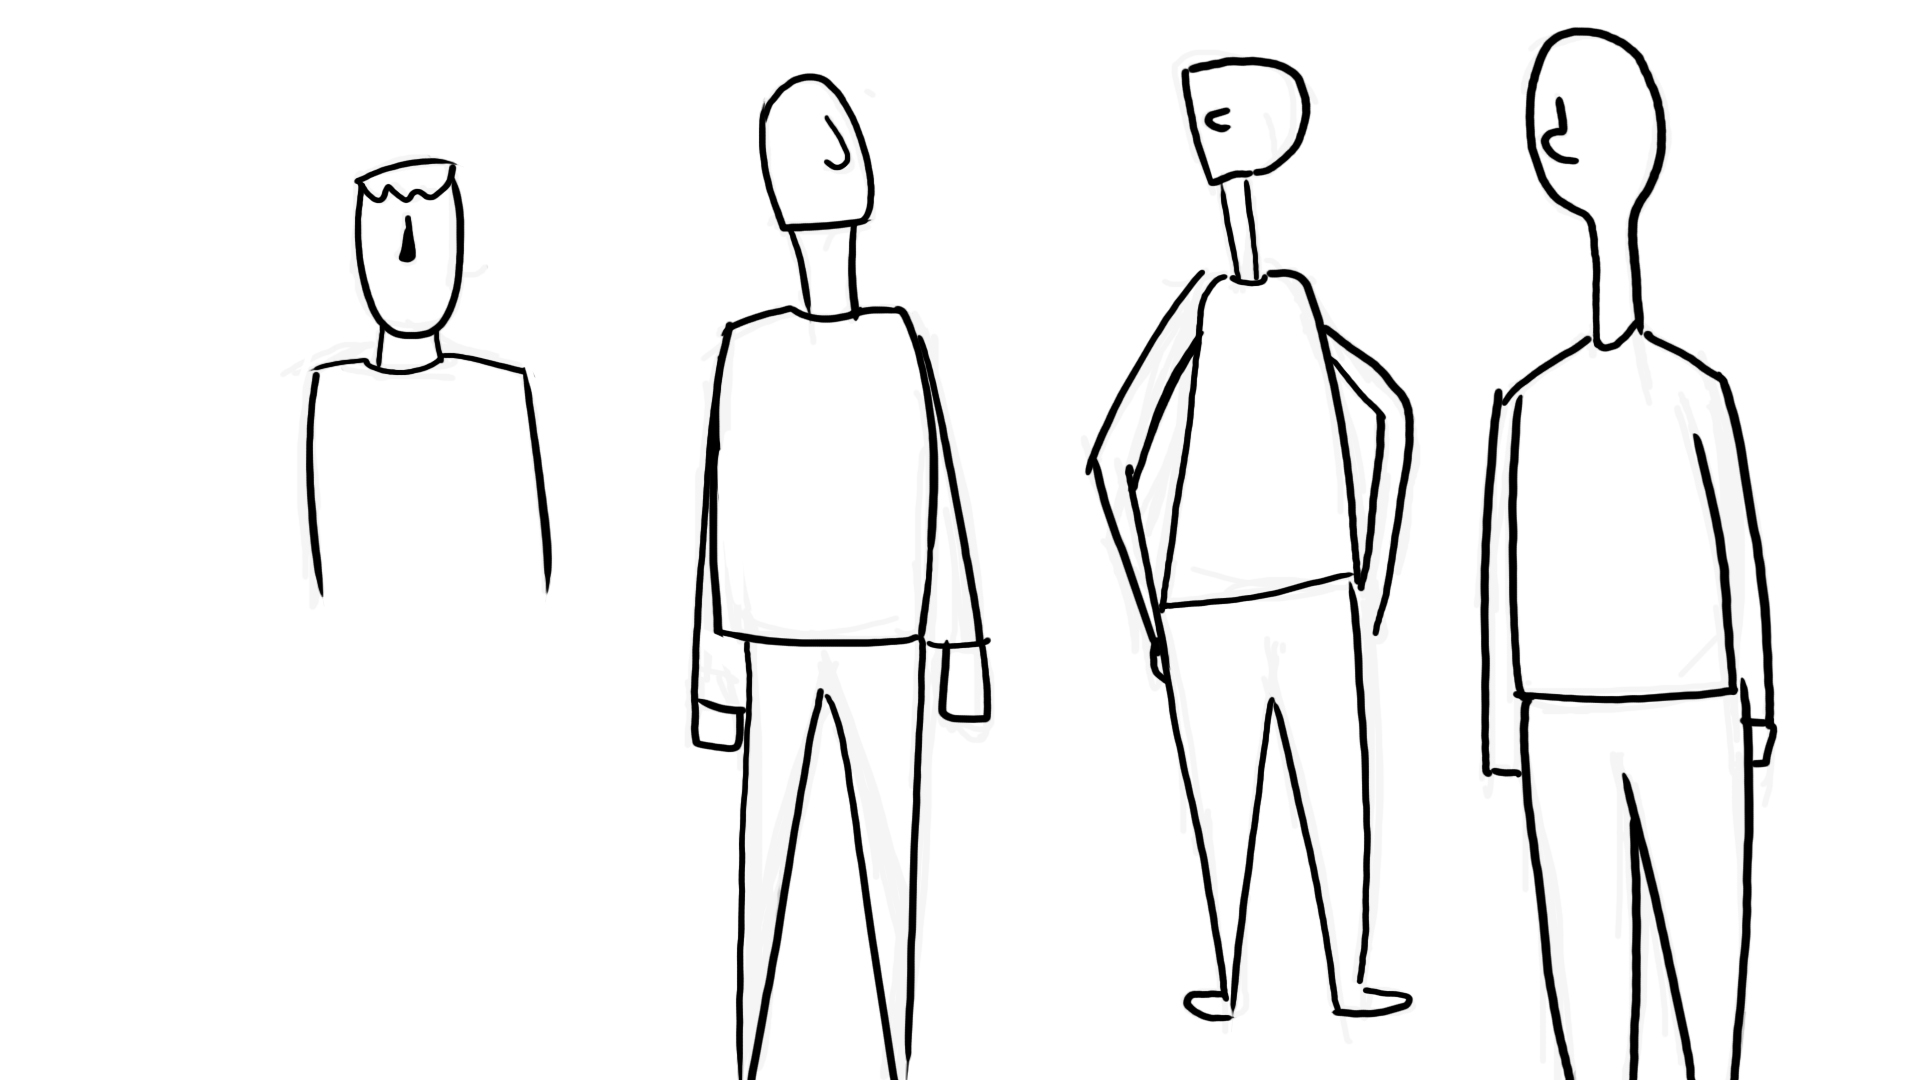 characters_test_v01__0000_Layer 6